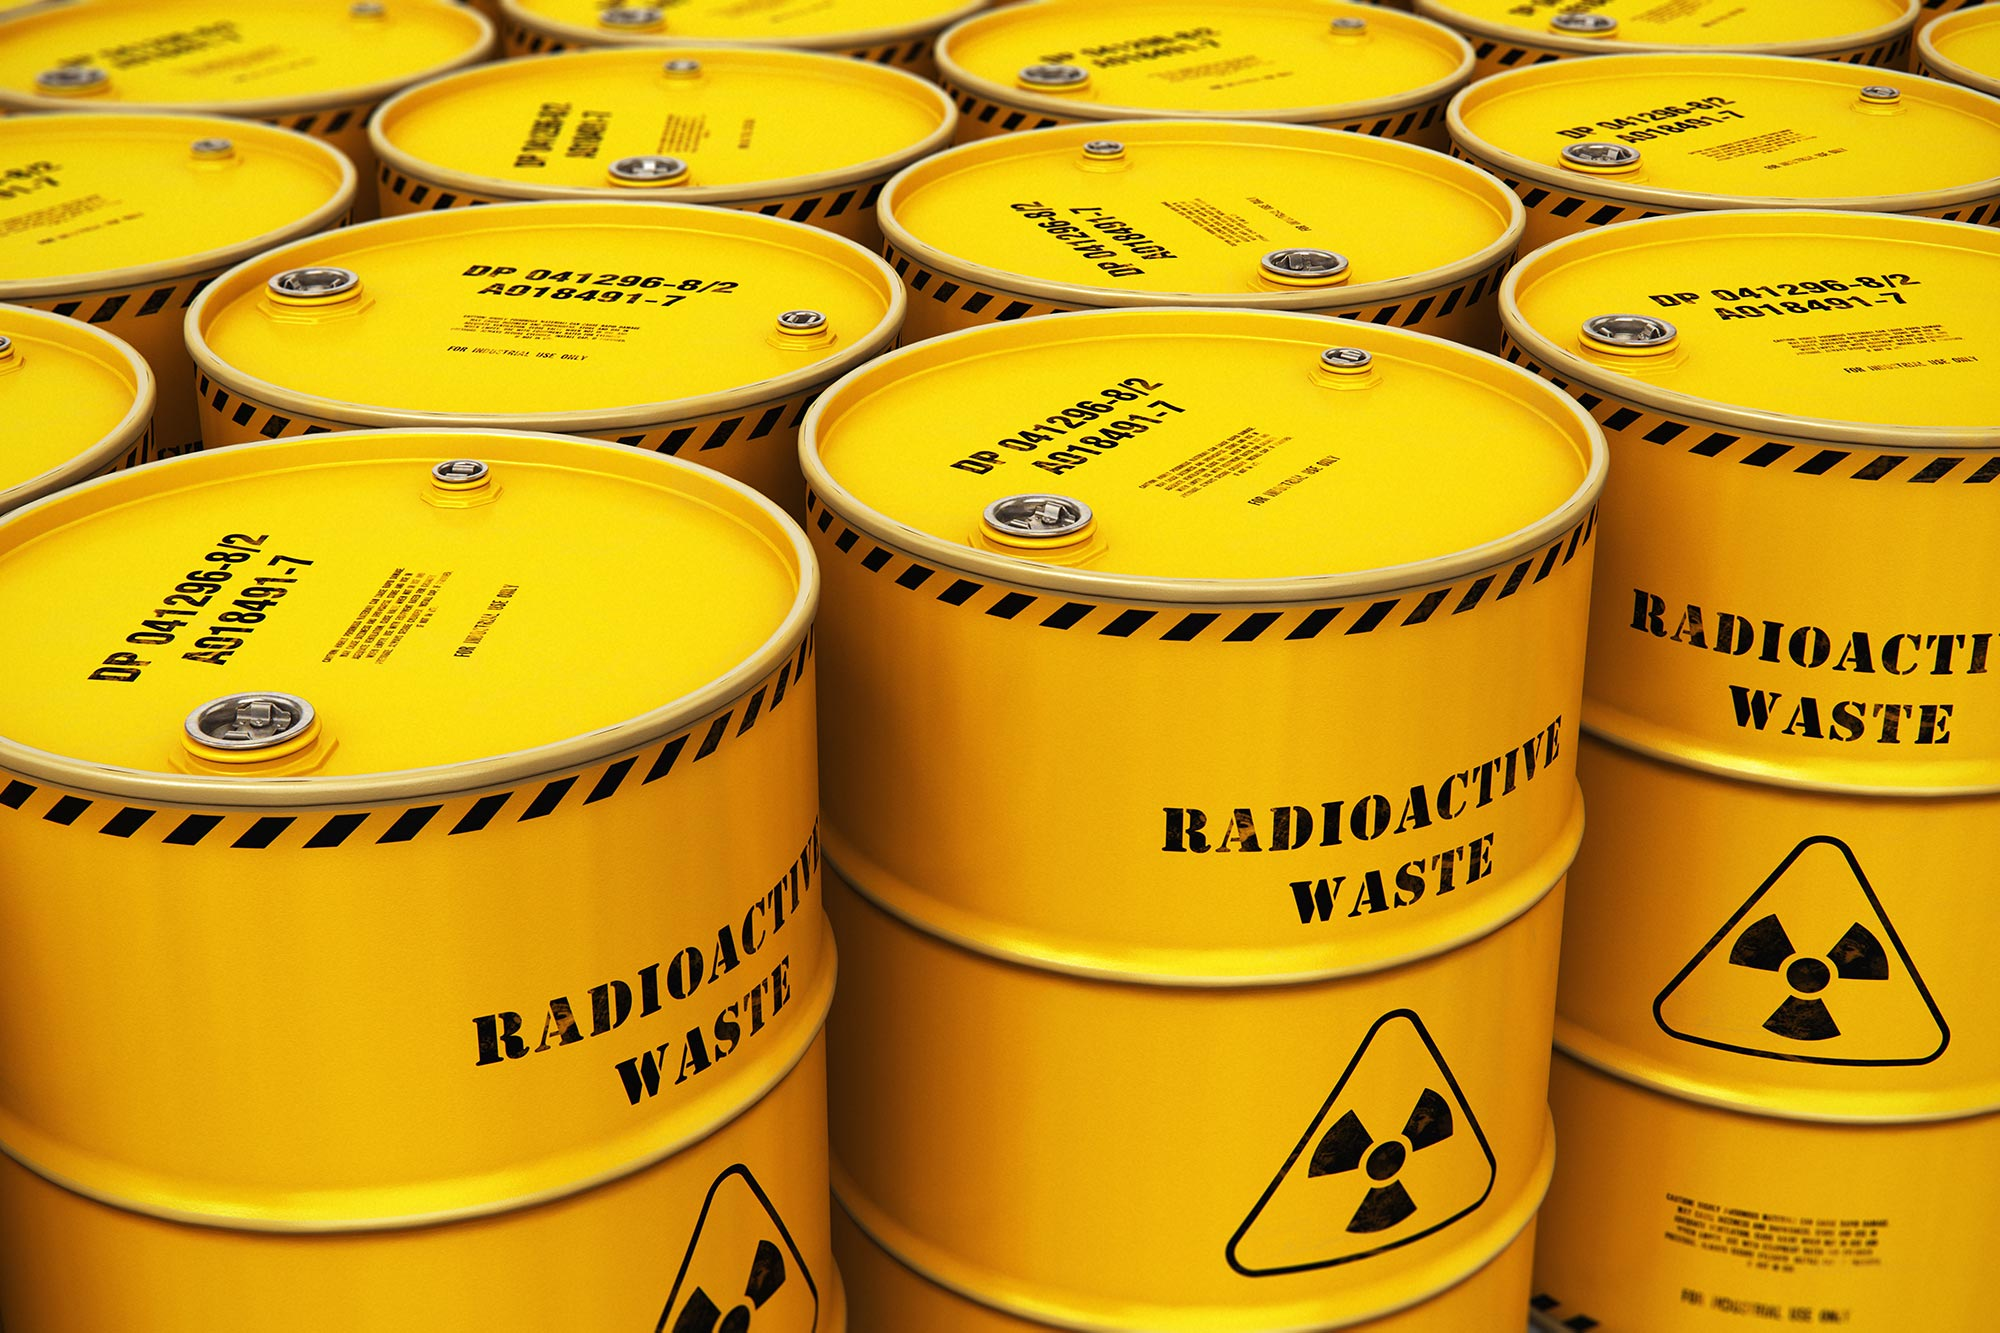 Chemists Have Found a Productive Use for Stockpiles of Nuclear Waste - SciTechDaily